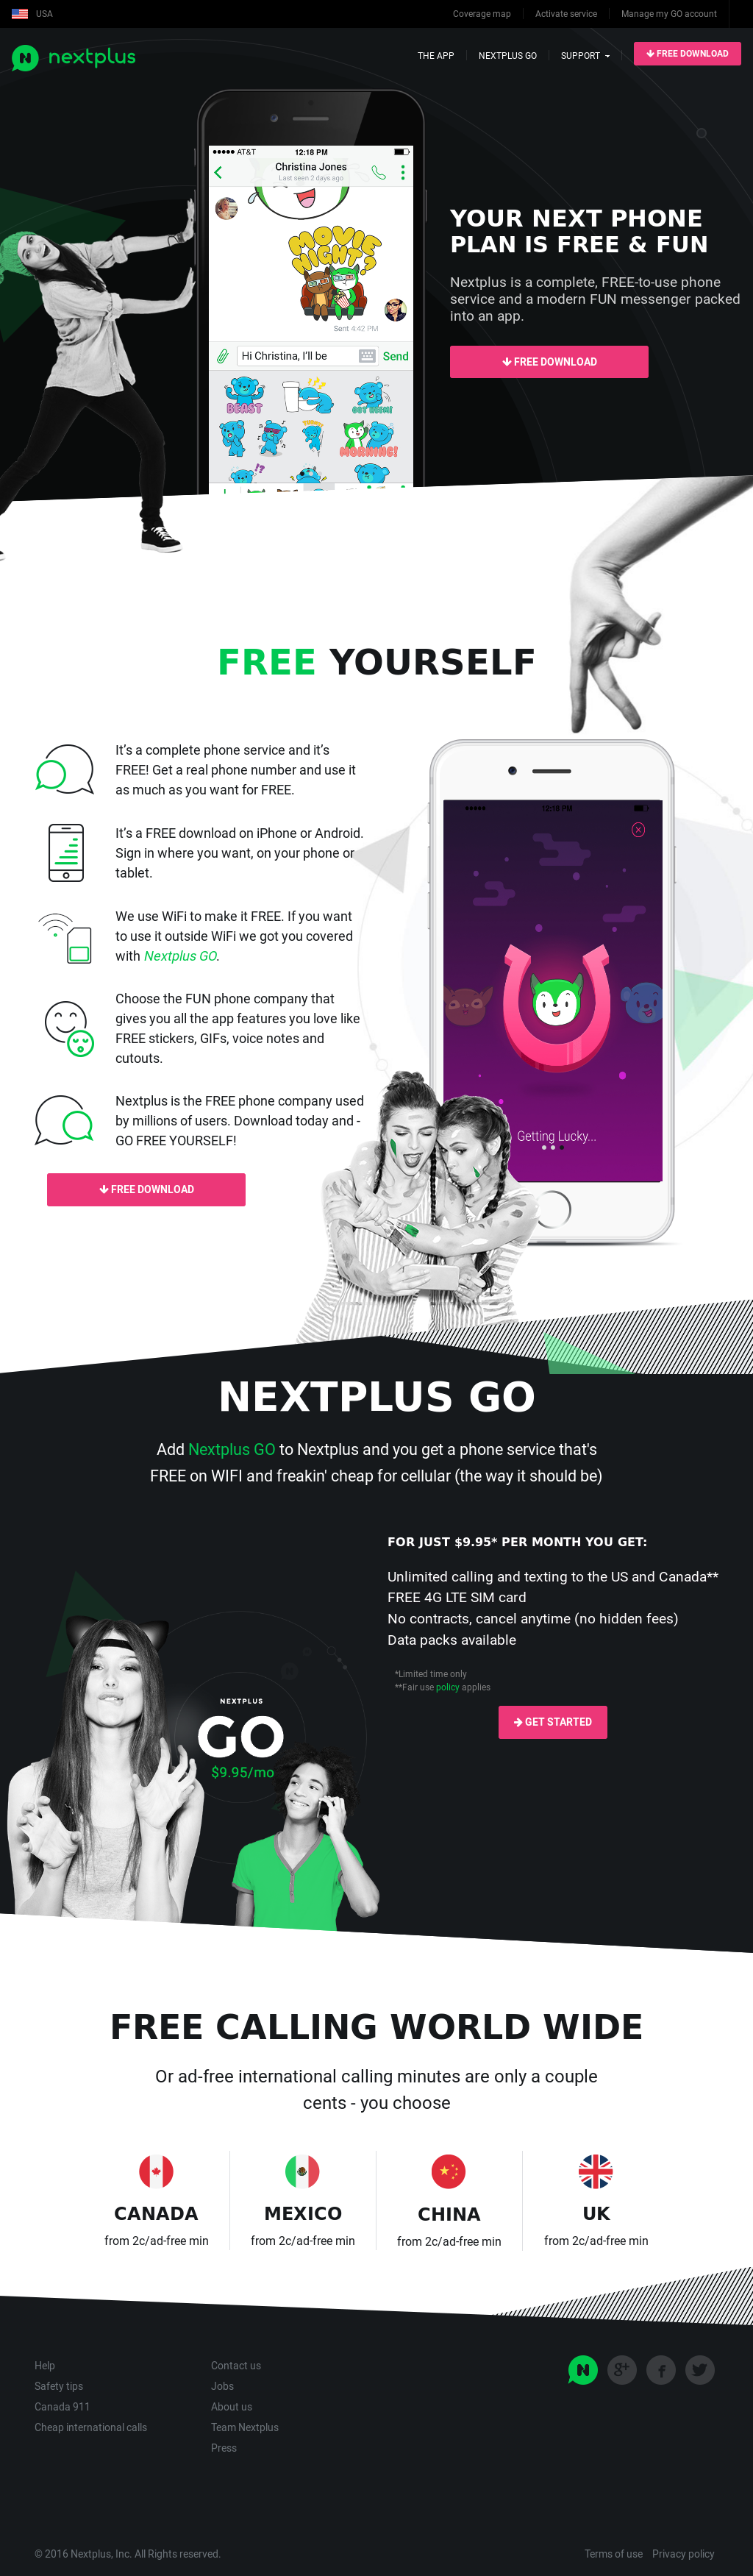 Nextplus Competitors, Revenue and Employees - Owler Company